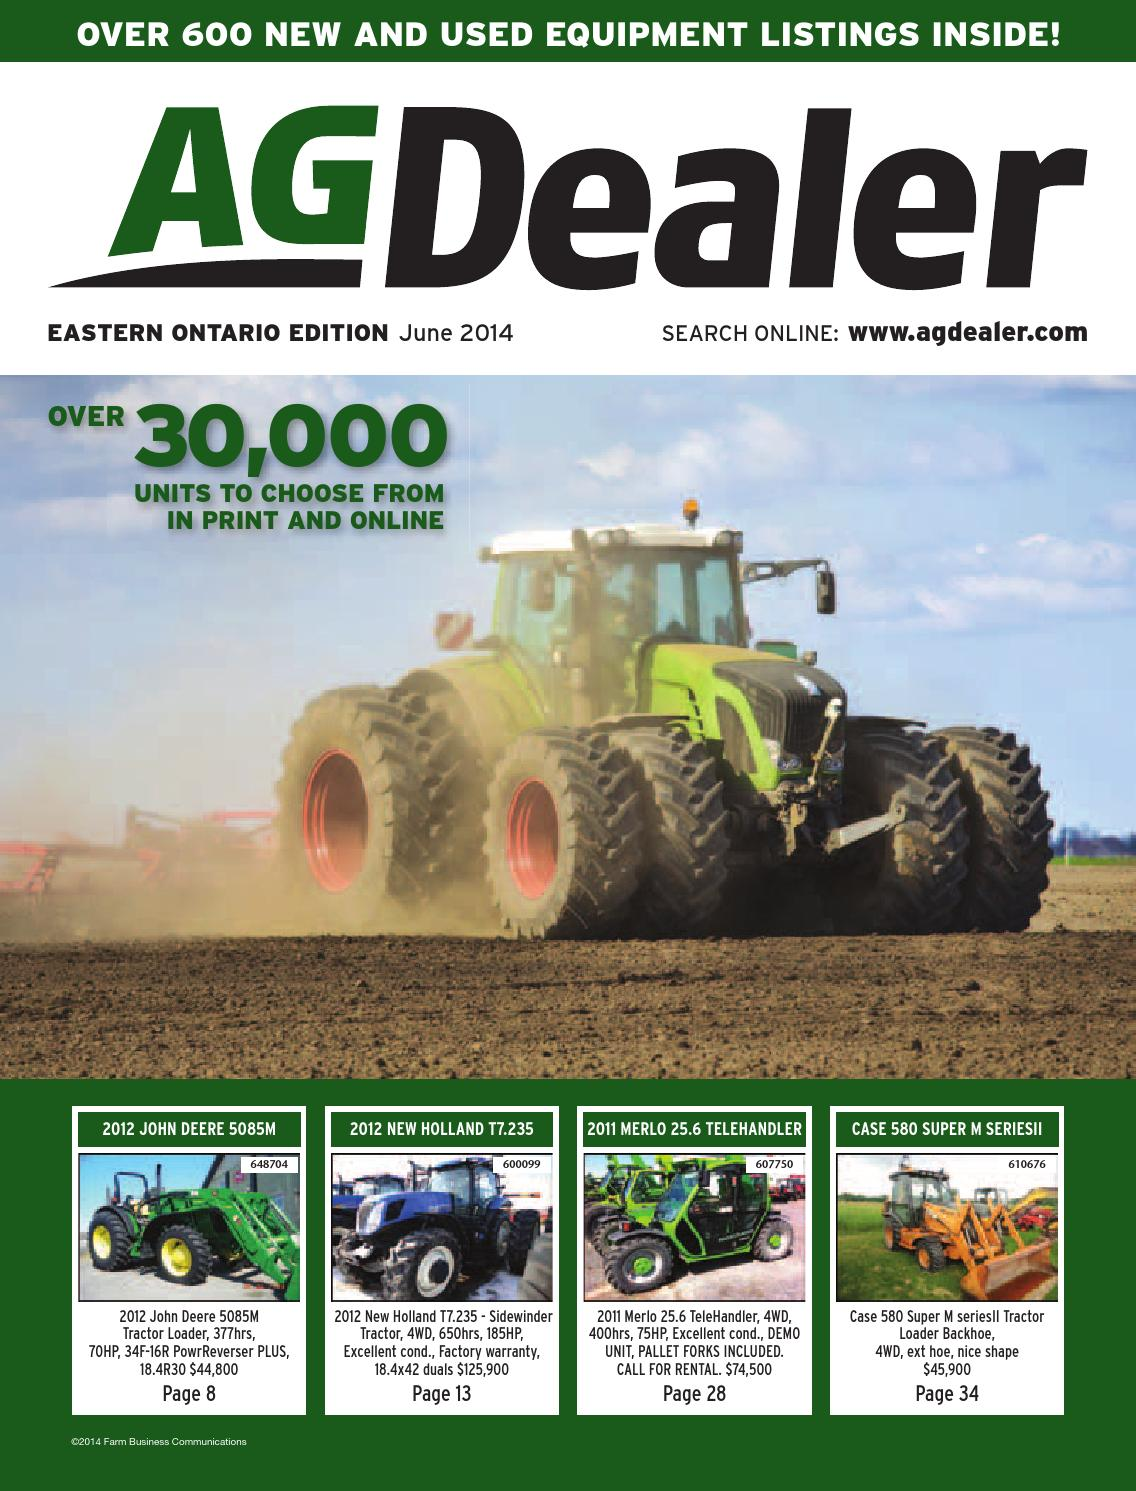 AGDealer Eastern Ontario Edition, June 2014 by Farm Business